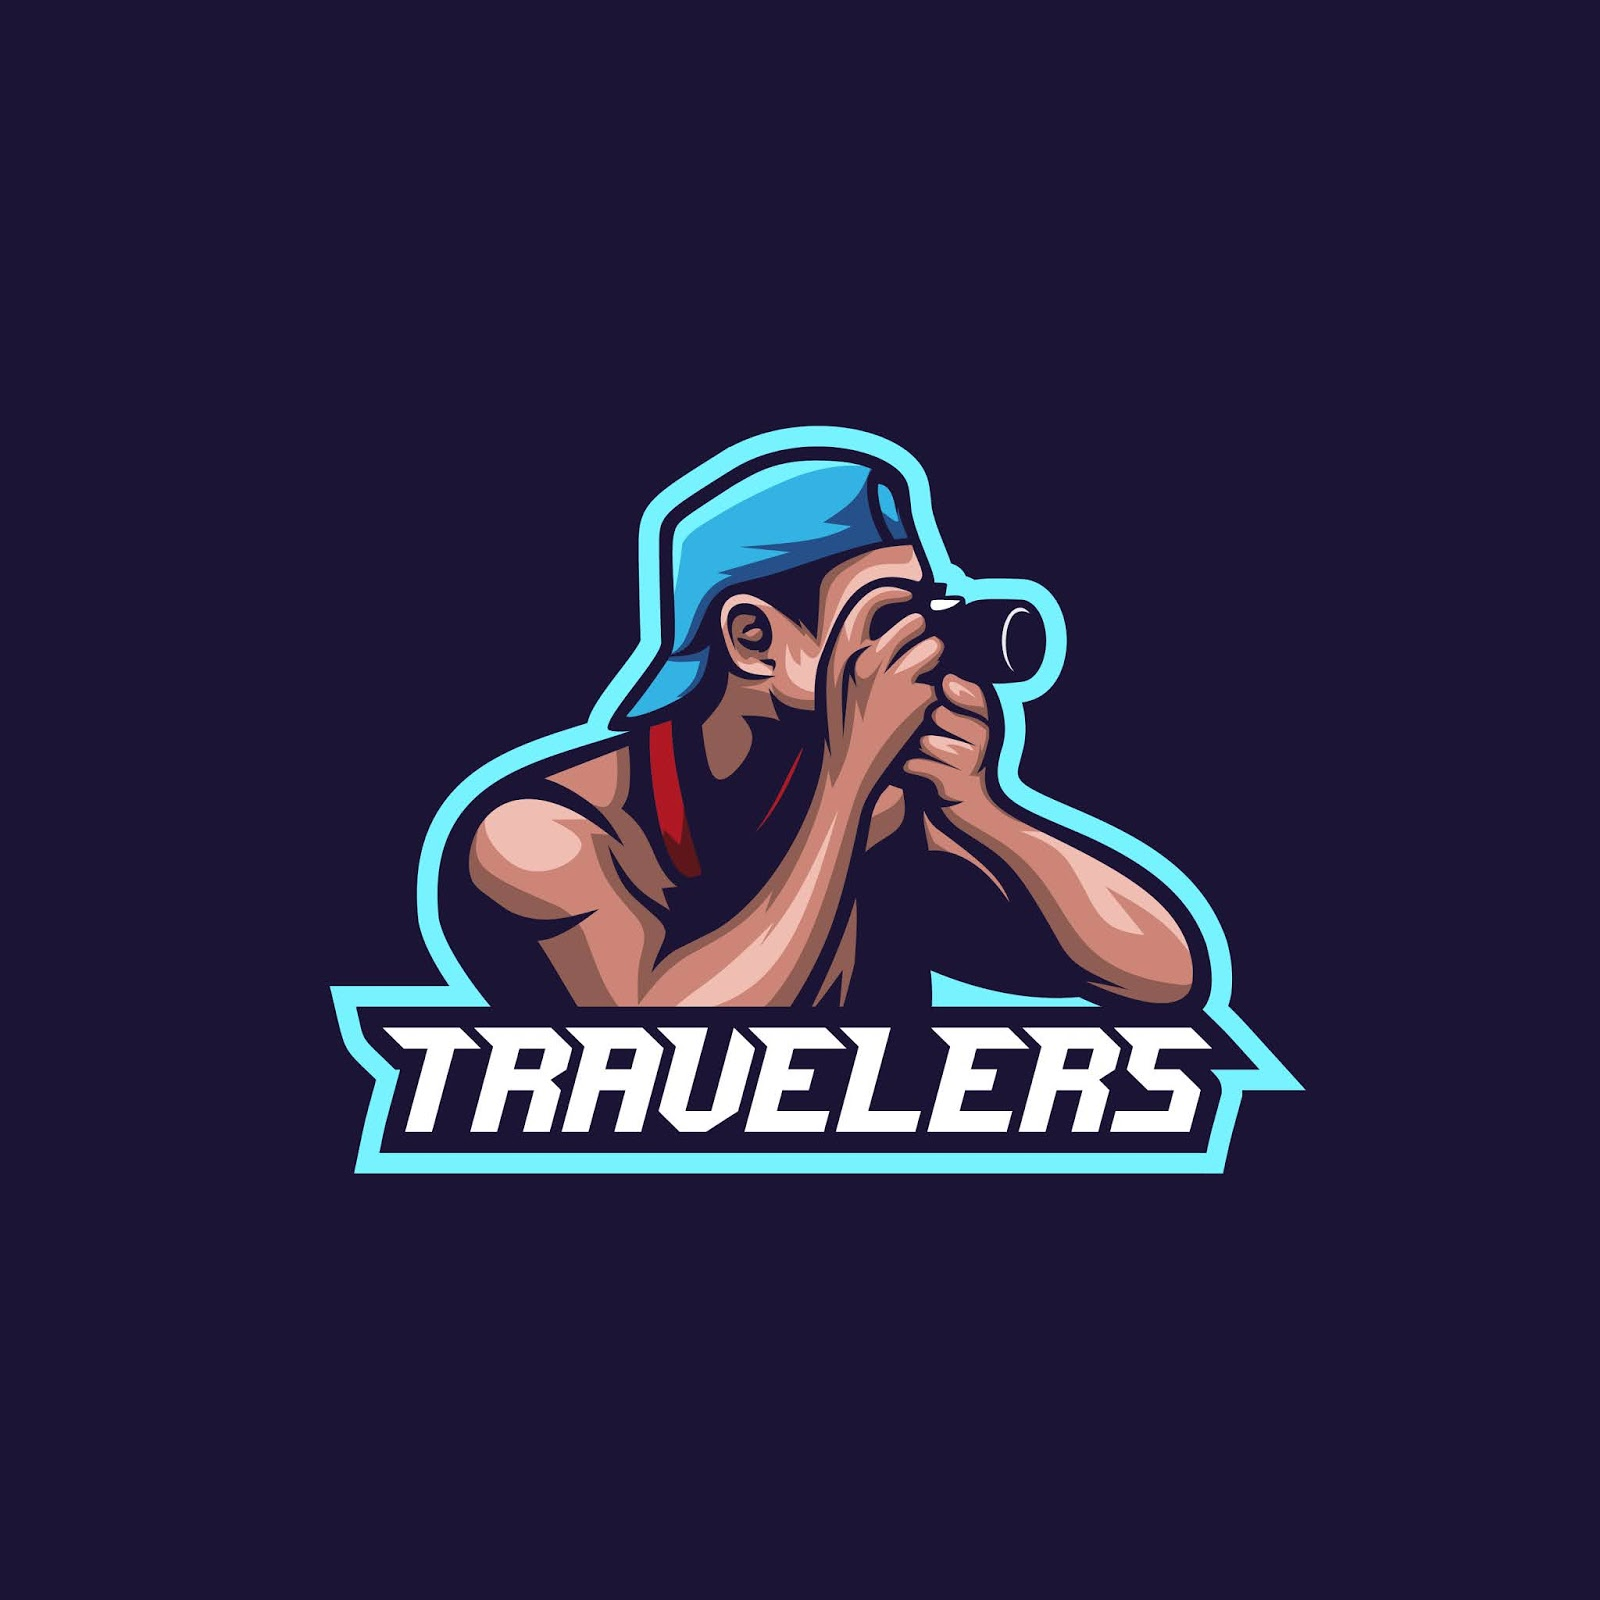 Traveler Take Photo Illustration Premium Free Download Vector CDR, AI, EPS and PNG Formats